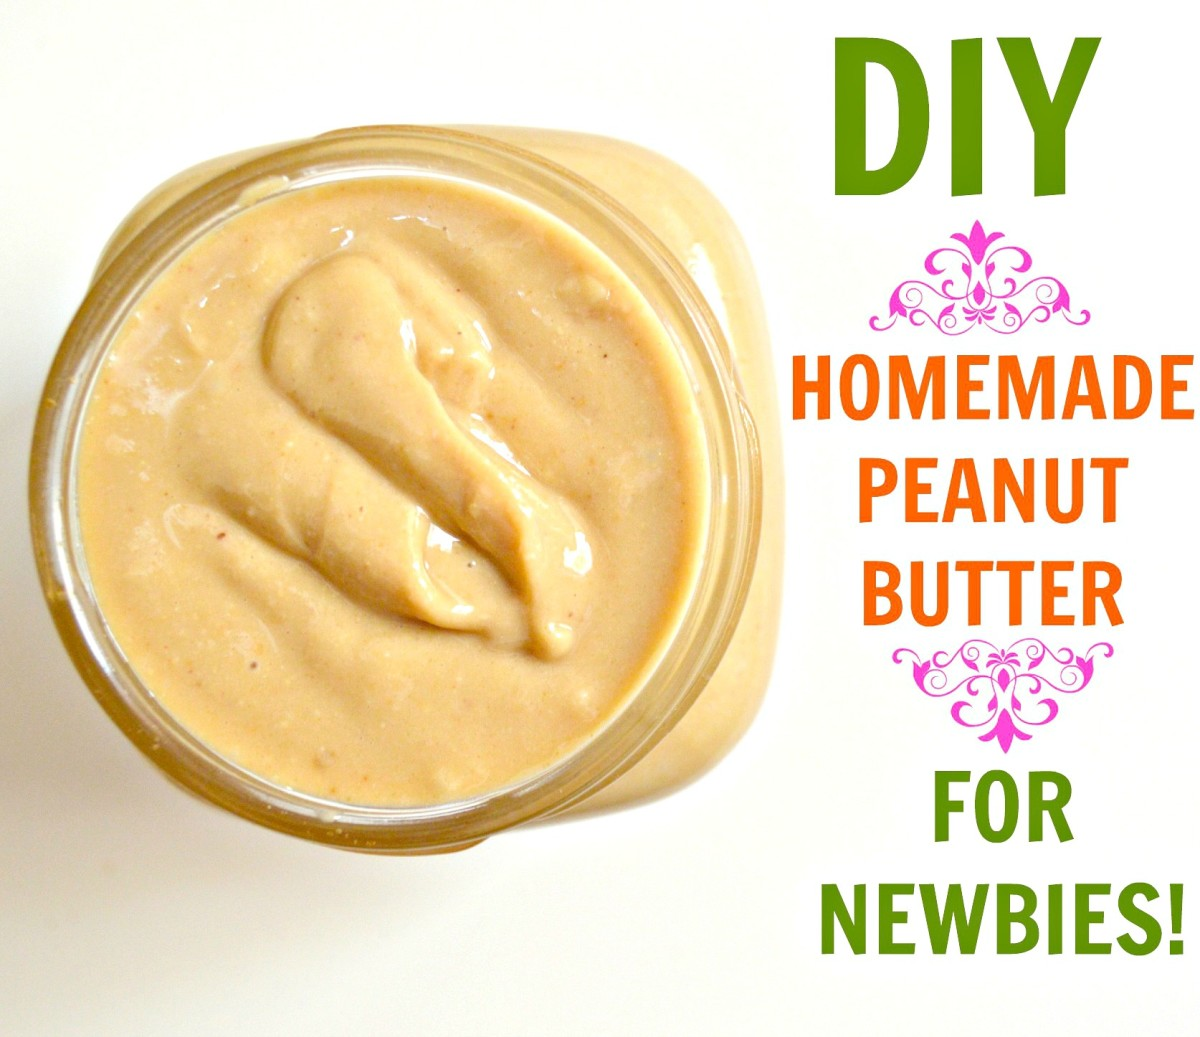 Never made peanut butter at home before? Here's an easy guide!